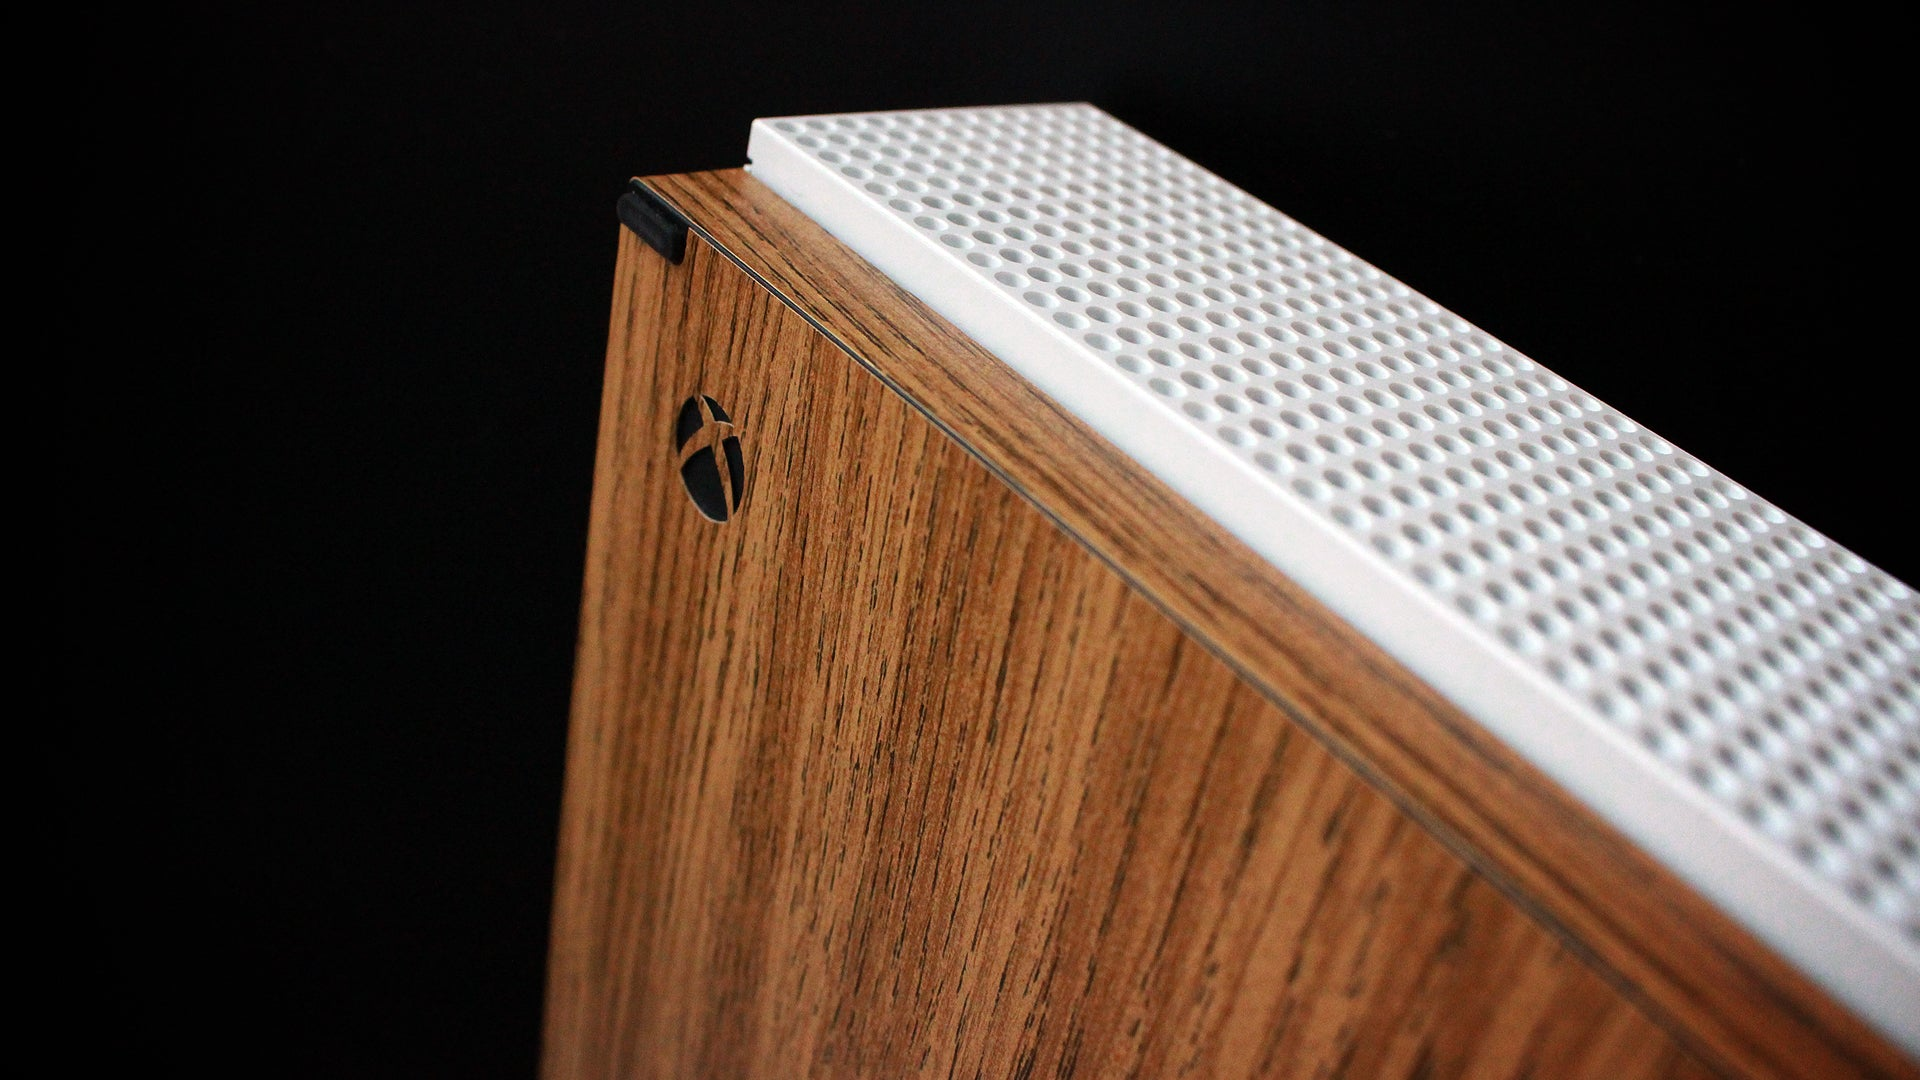 Xbox One S Light Oak Wood Skins